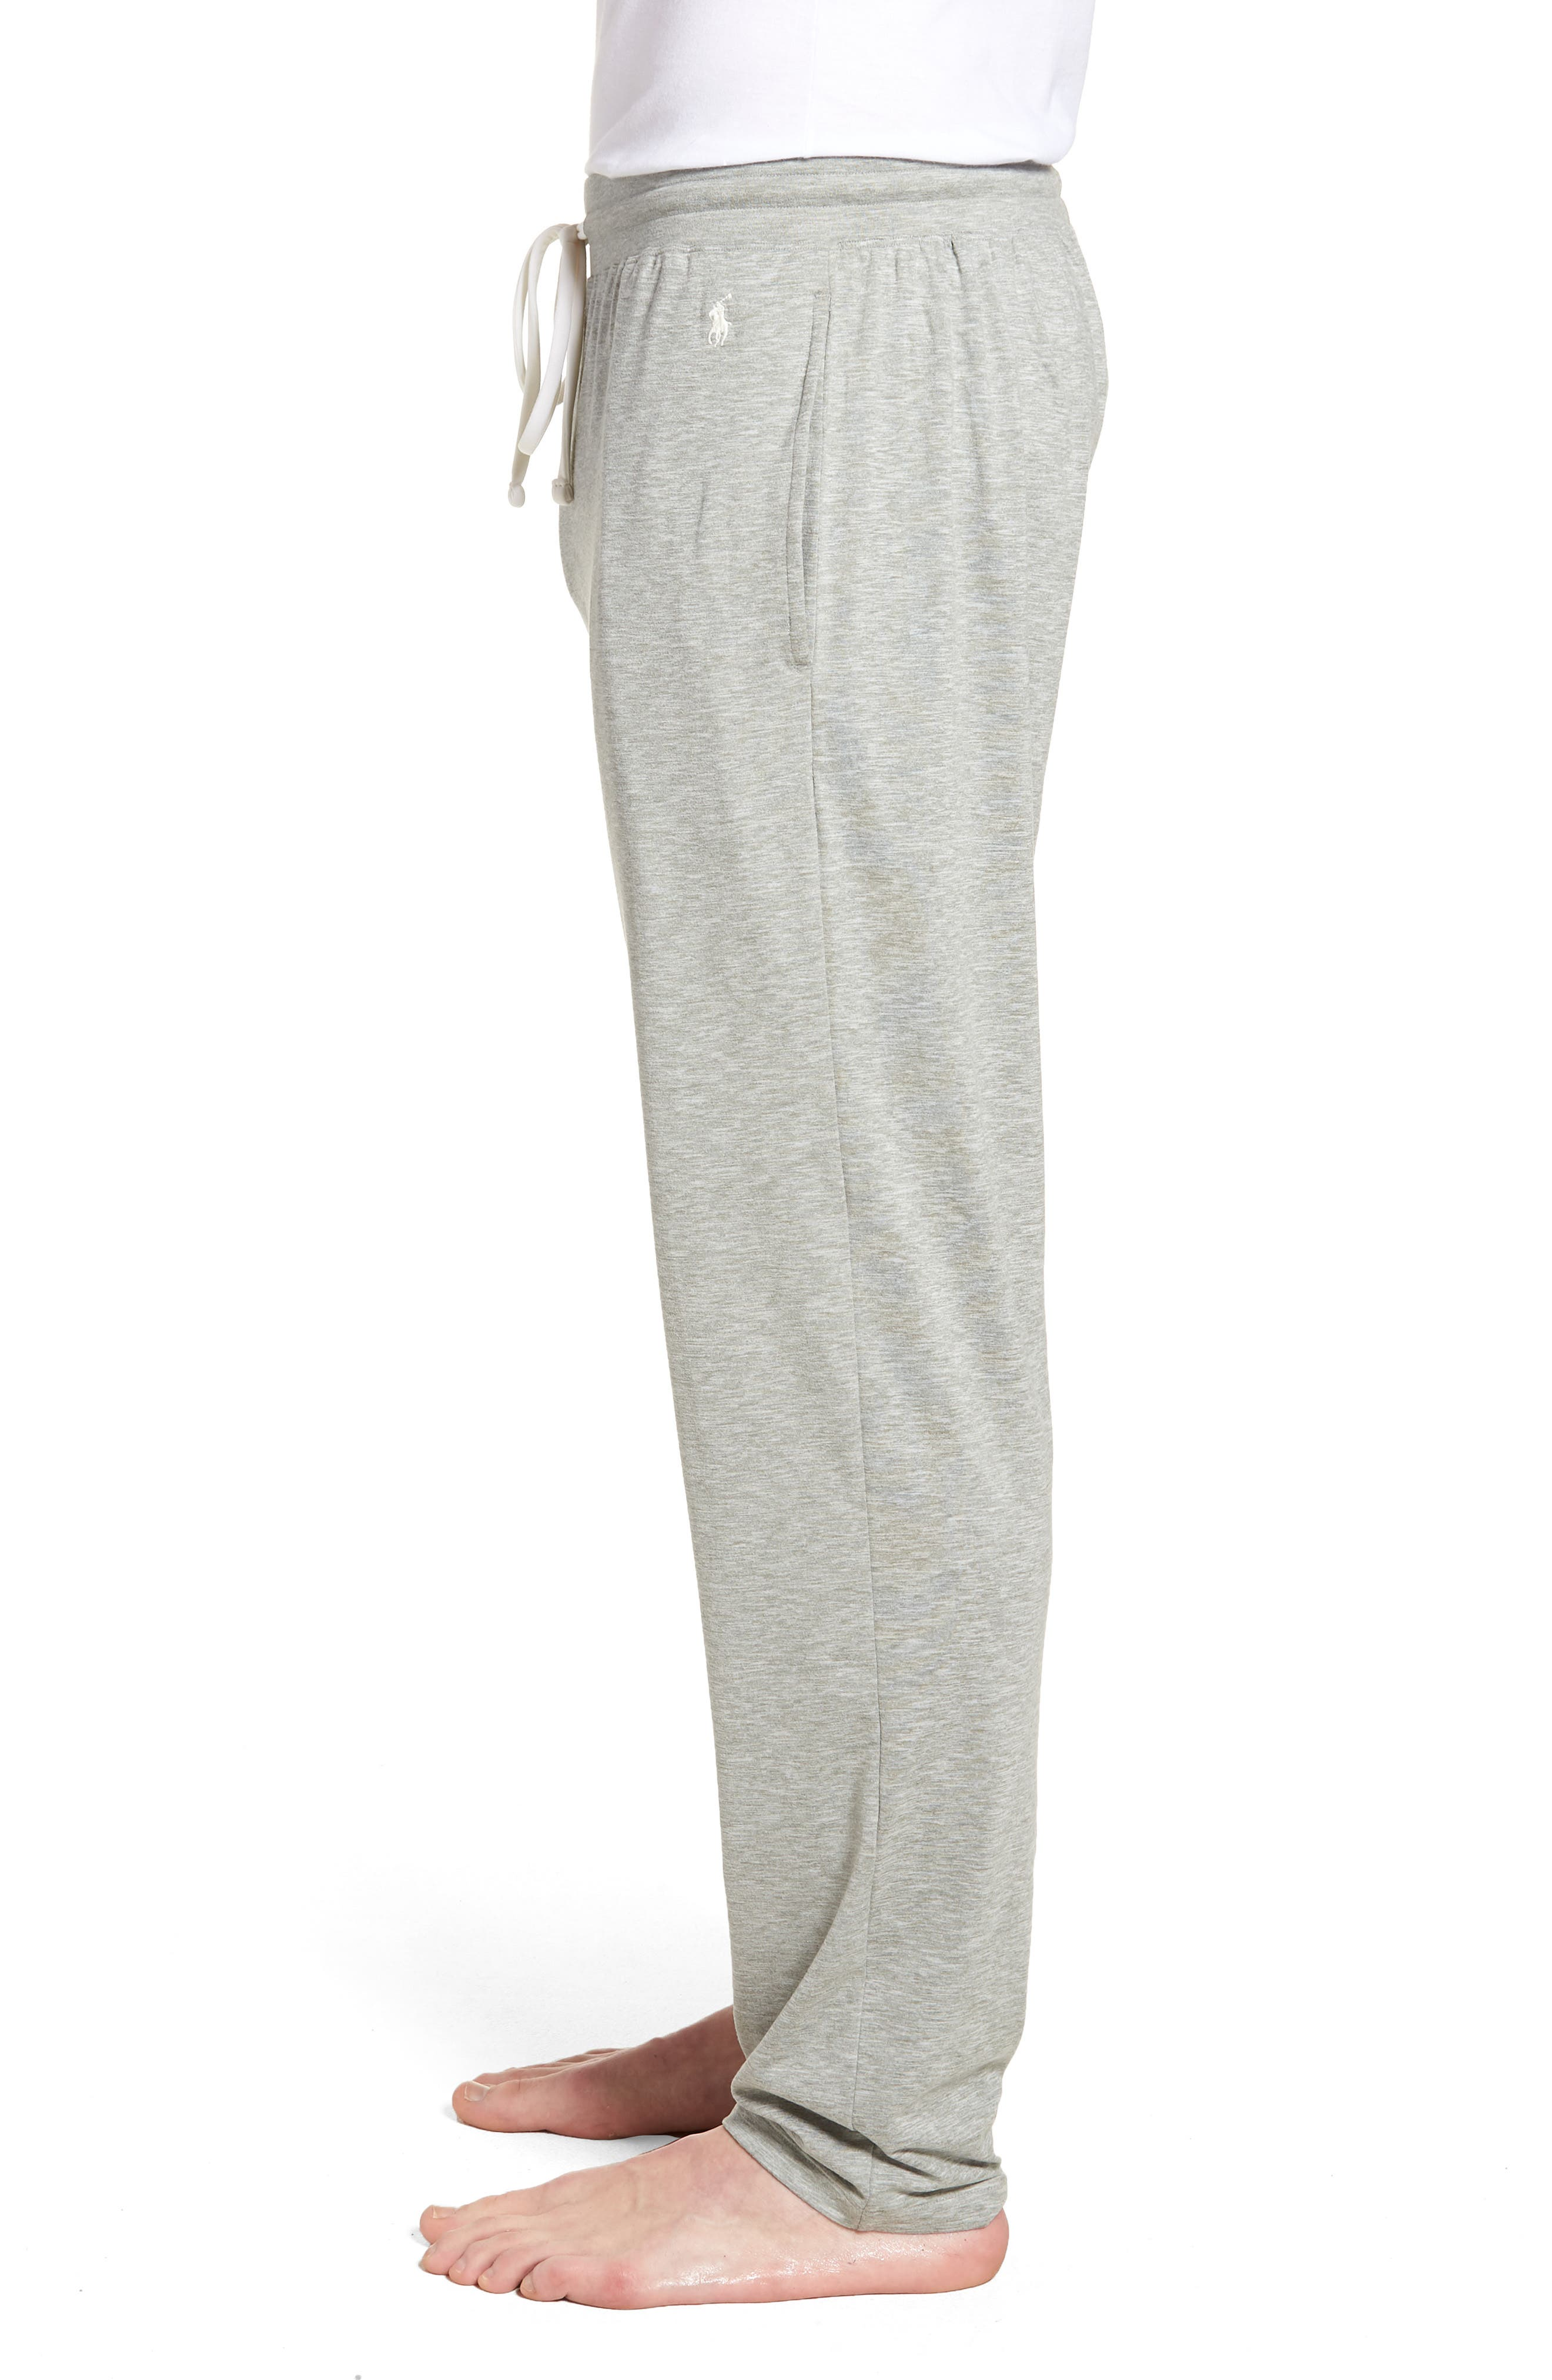 POLO RALPH LAUREN,                             Therma Lounge Pants,                             Alternate thumbnail 3, color,                             033